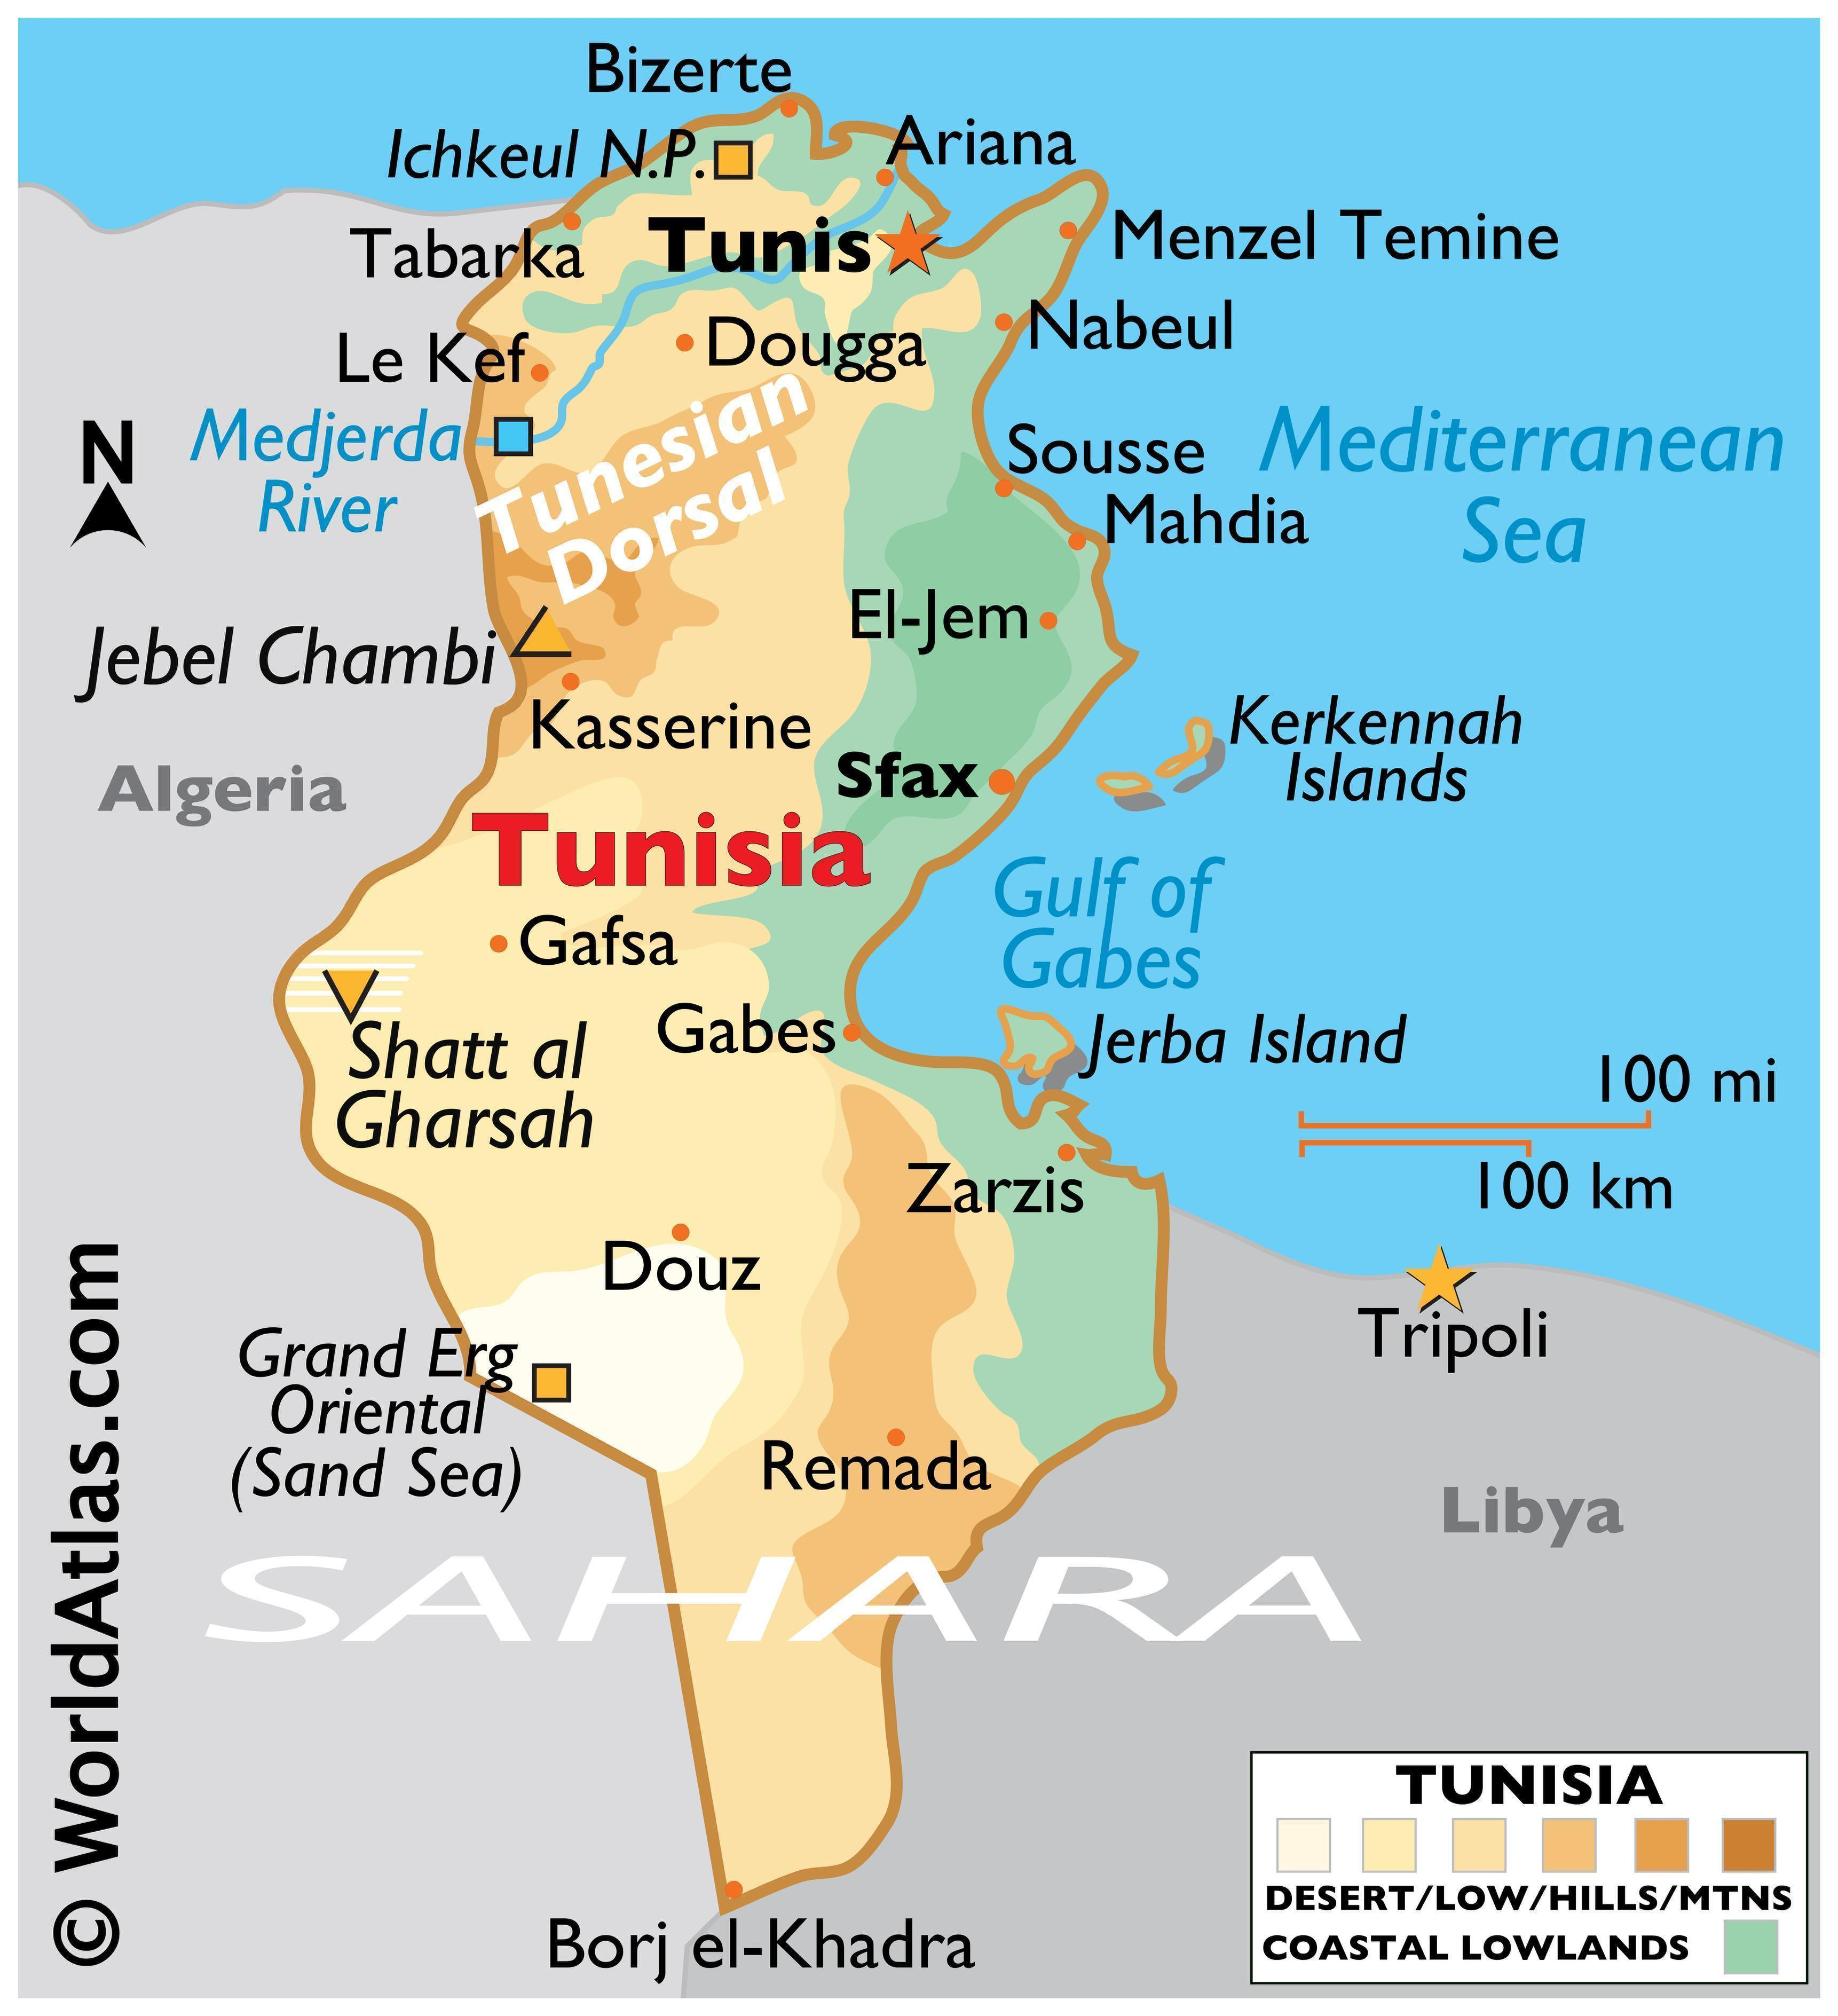 Phyiscal Map of Tunisia With State Boundaries. It shows the physical features of the Tunisia including mountain ranges, rivers, and major lakes, relative location of major cities, and more.